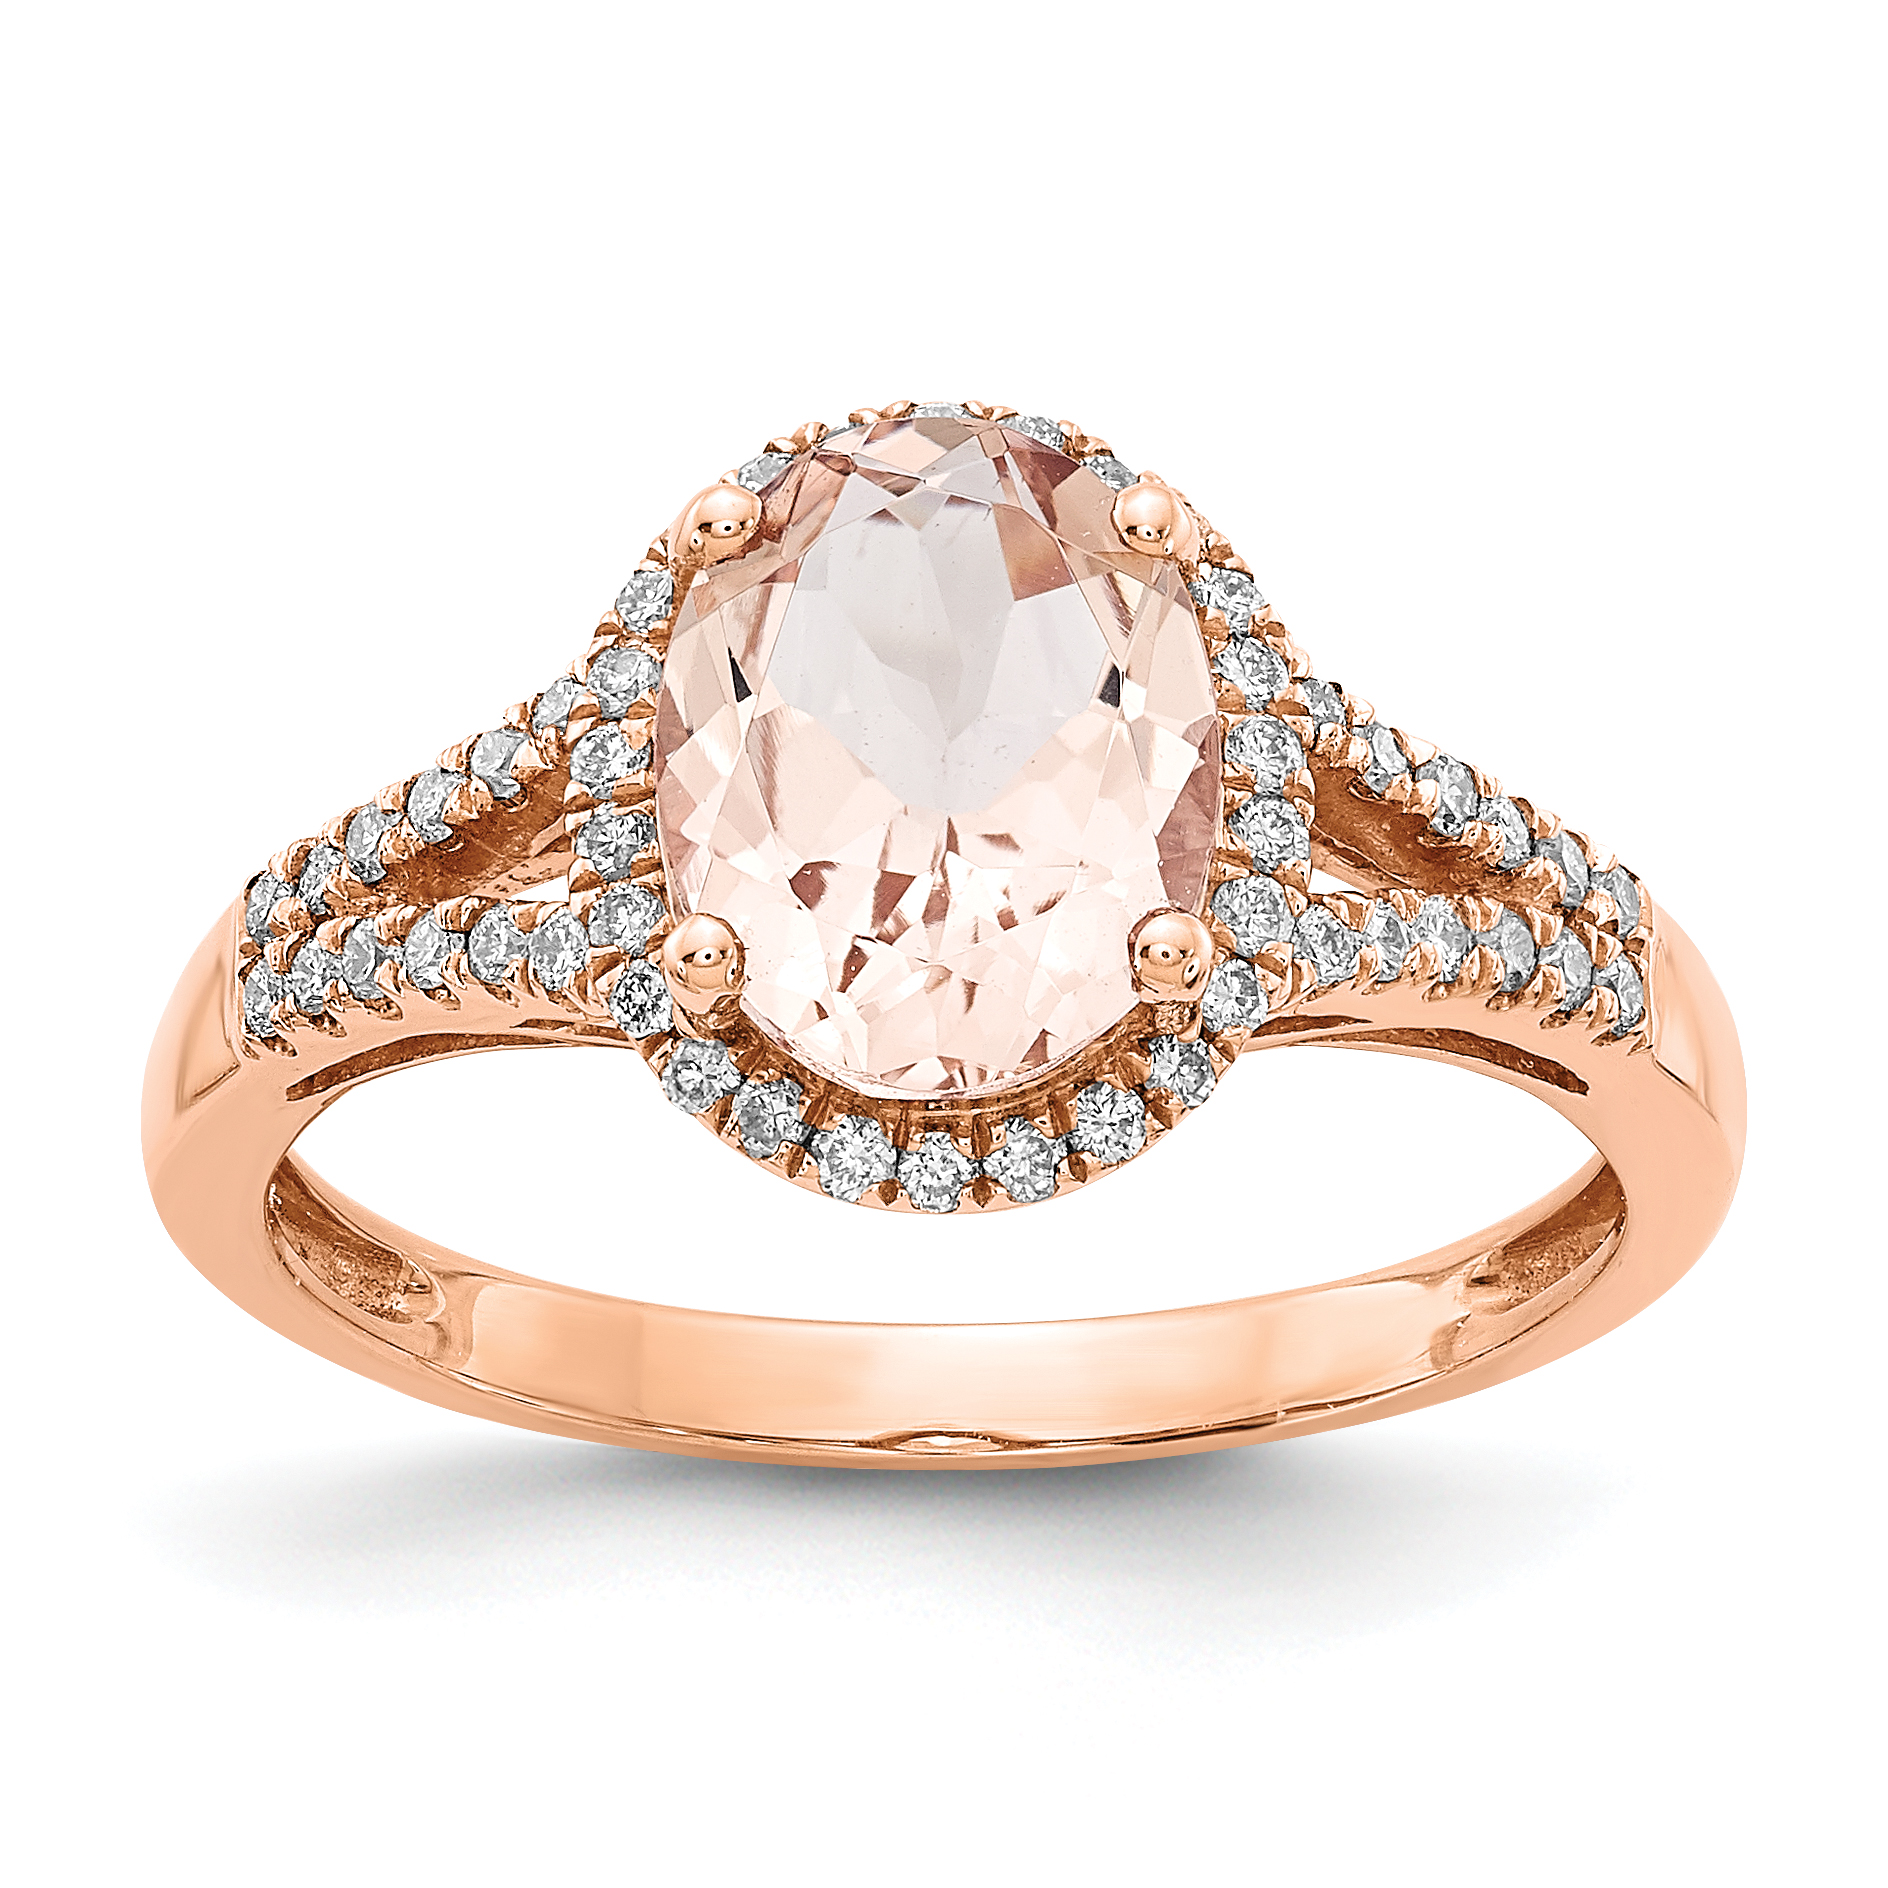 14kt Rose Gold Pink Morganite Diamond Band Ring Size 7.00 Fine Jewelry For Women Gift Set by IceCarats Designer Jewelry Gift USA